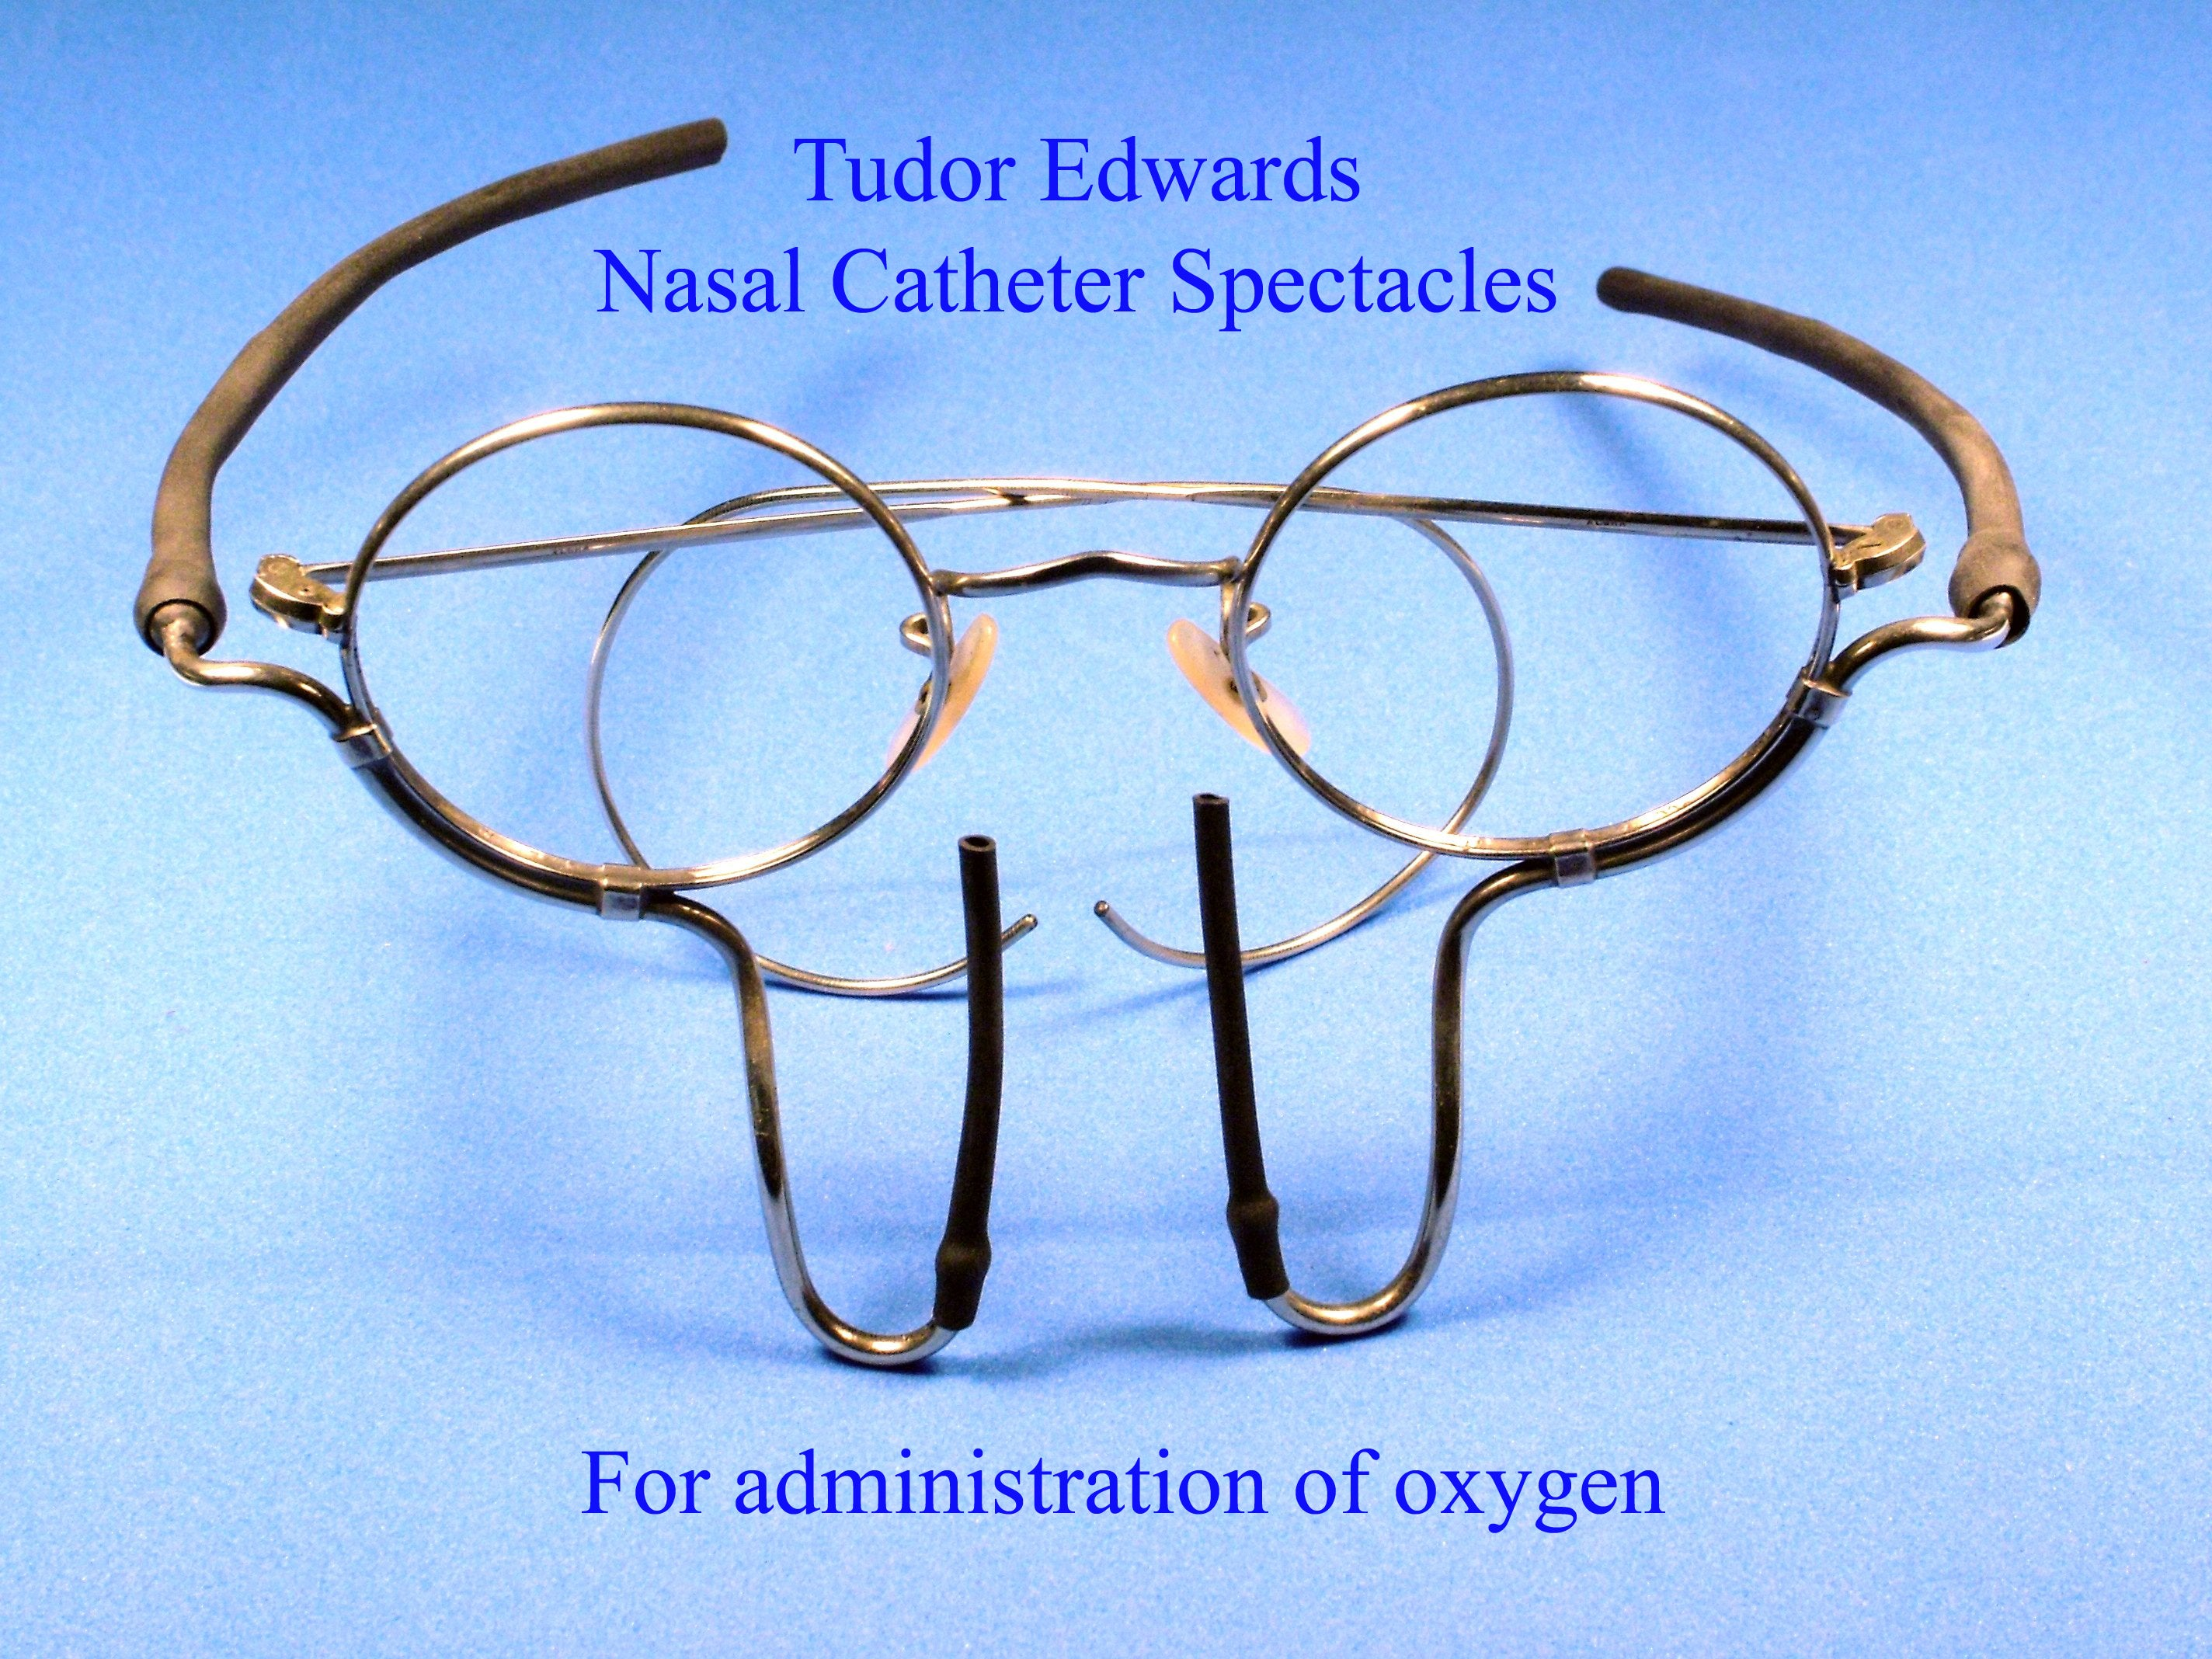 nasal catheter spectacles to administer oxygen